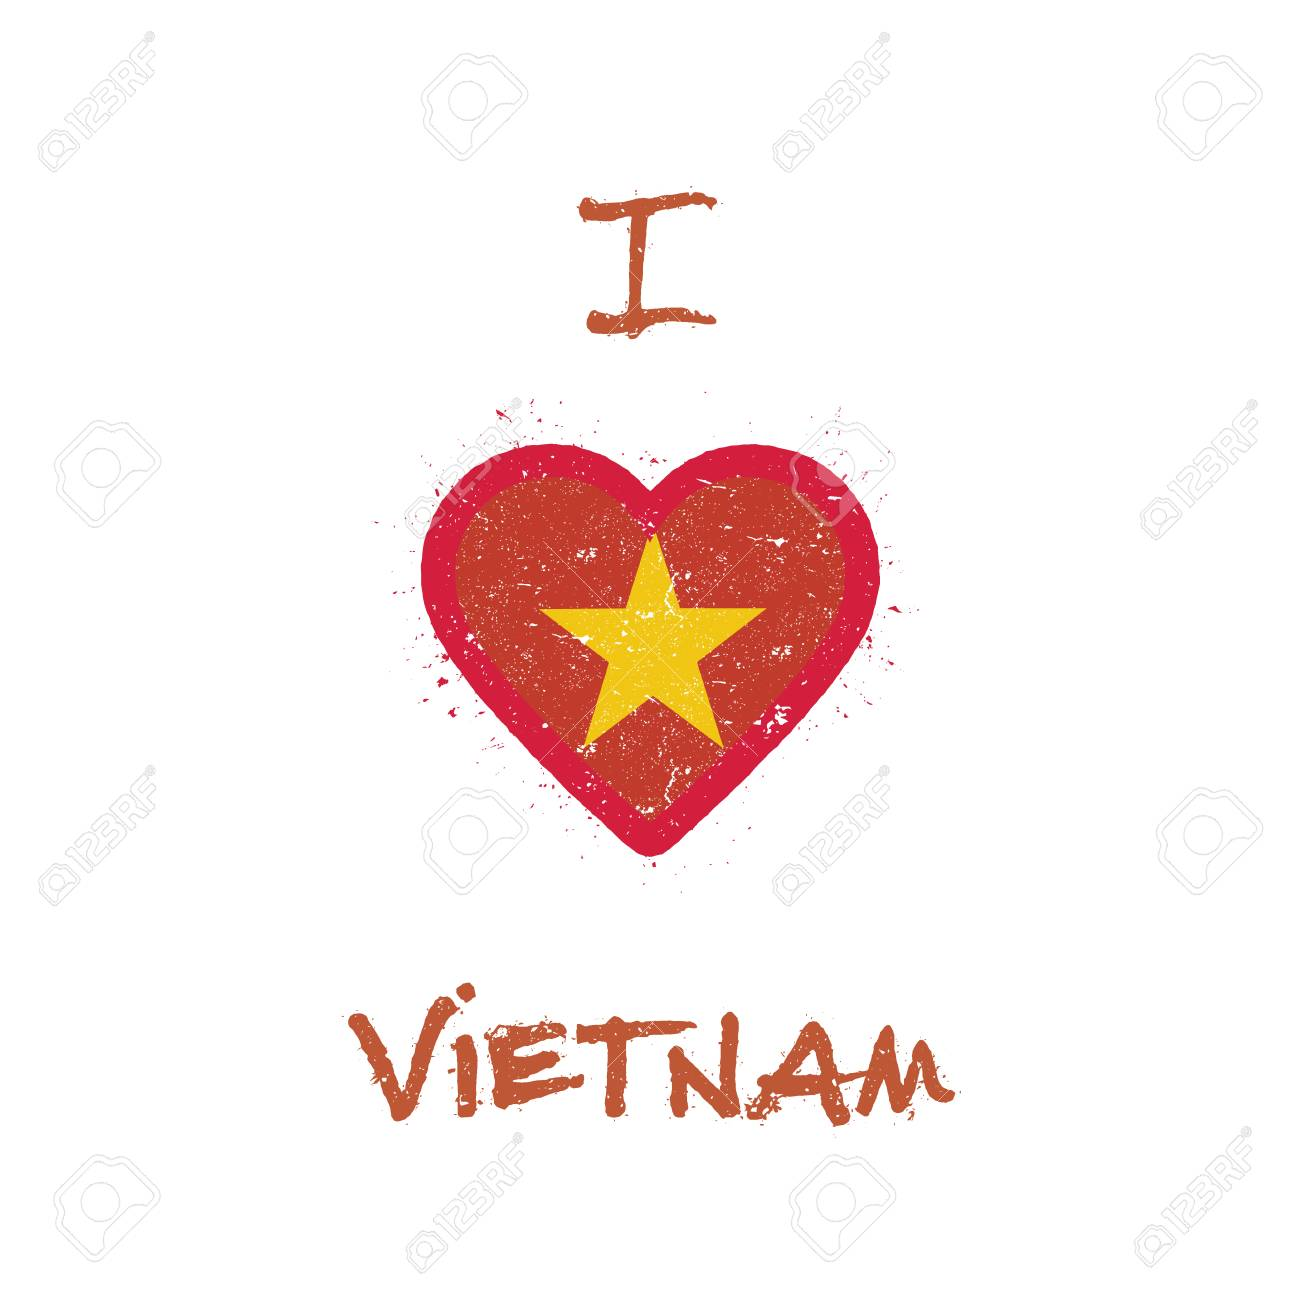 48f71e5b9fd I love Vietnam t-shirt design. Vietnamese flag in the shape of heart on